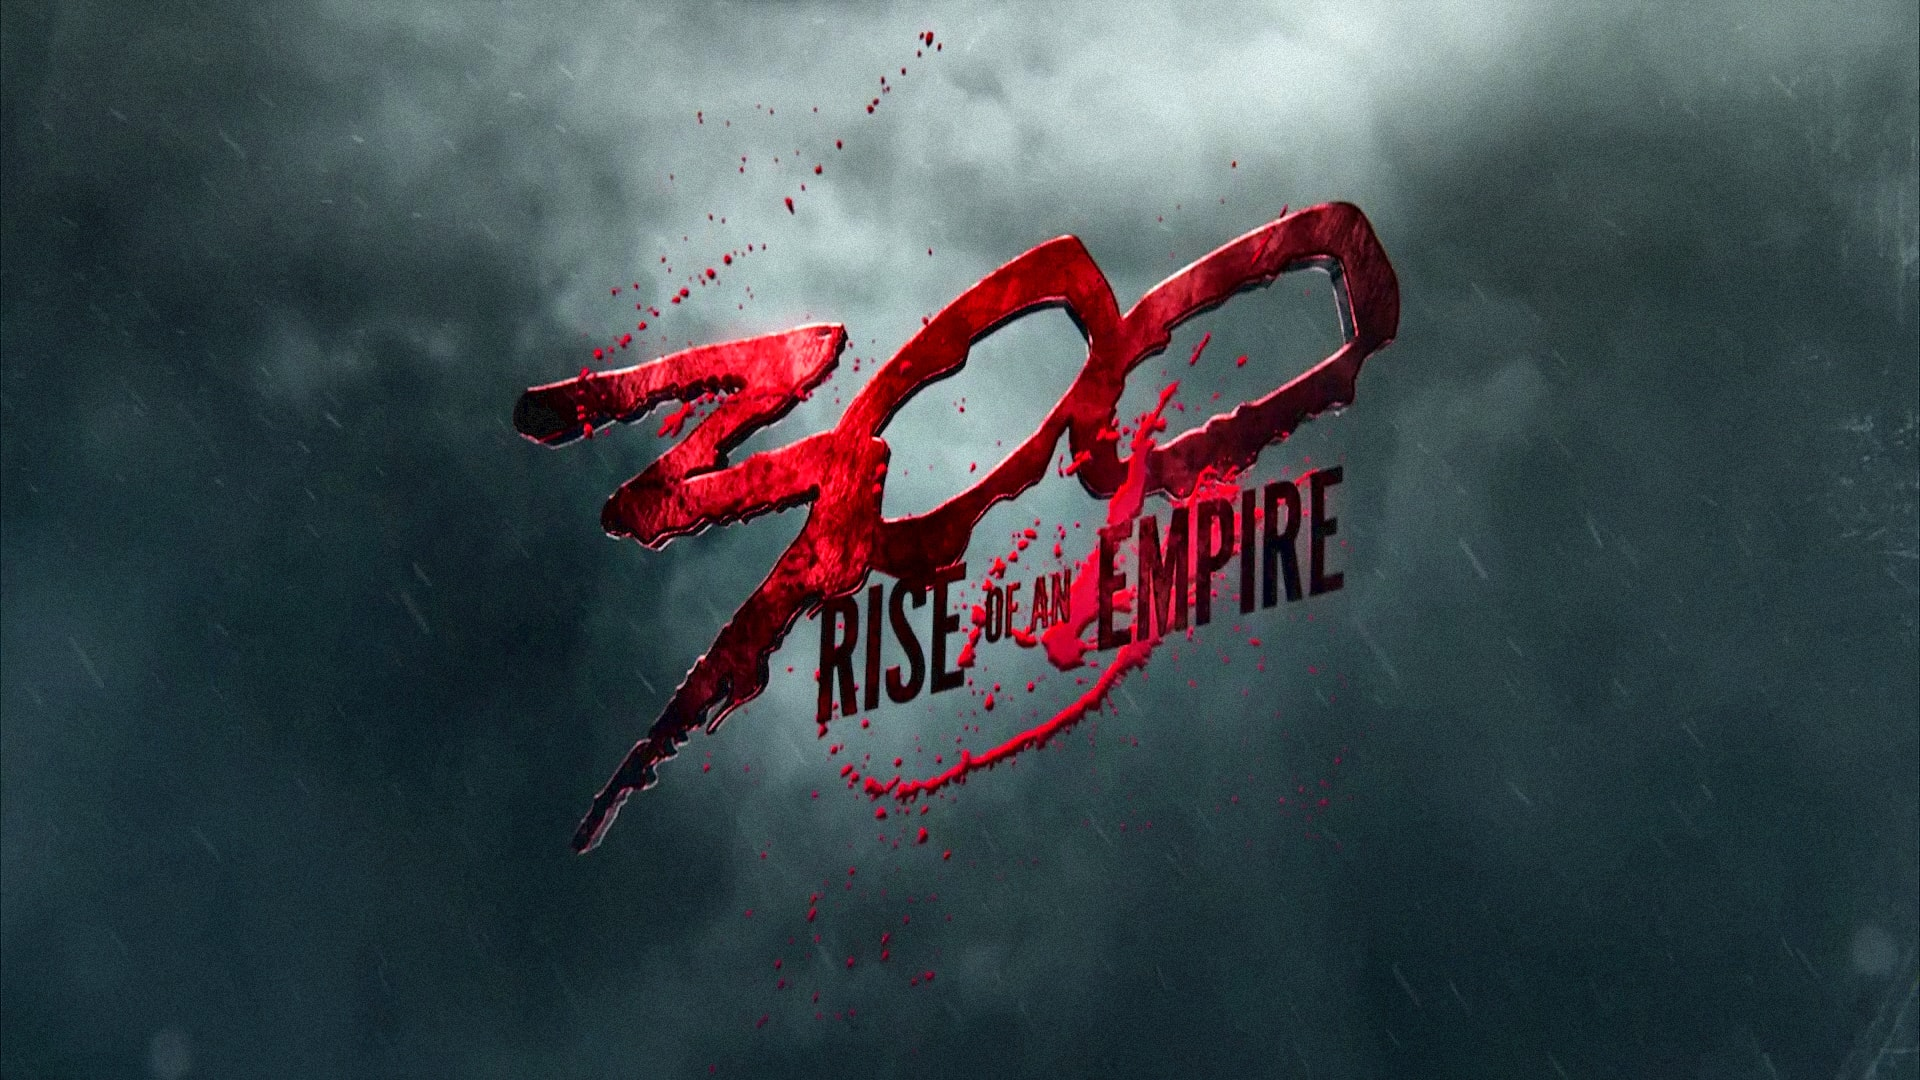 300: Rise of an Empire Desktop wallpaper